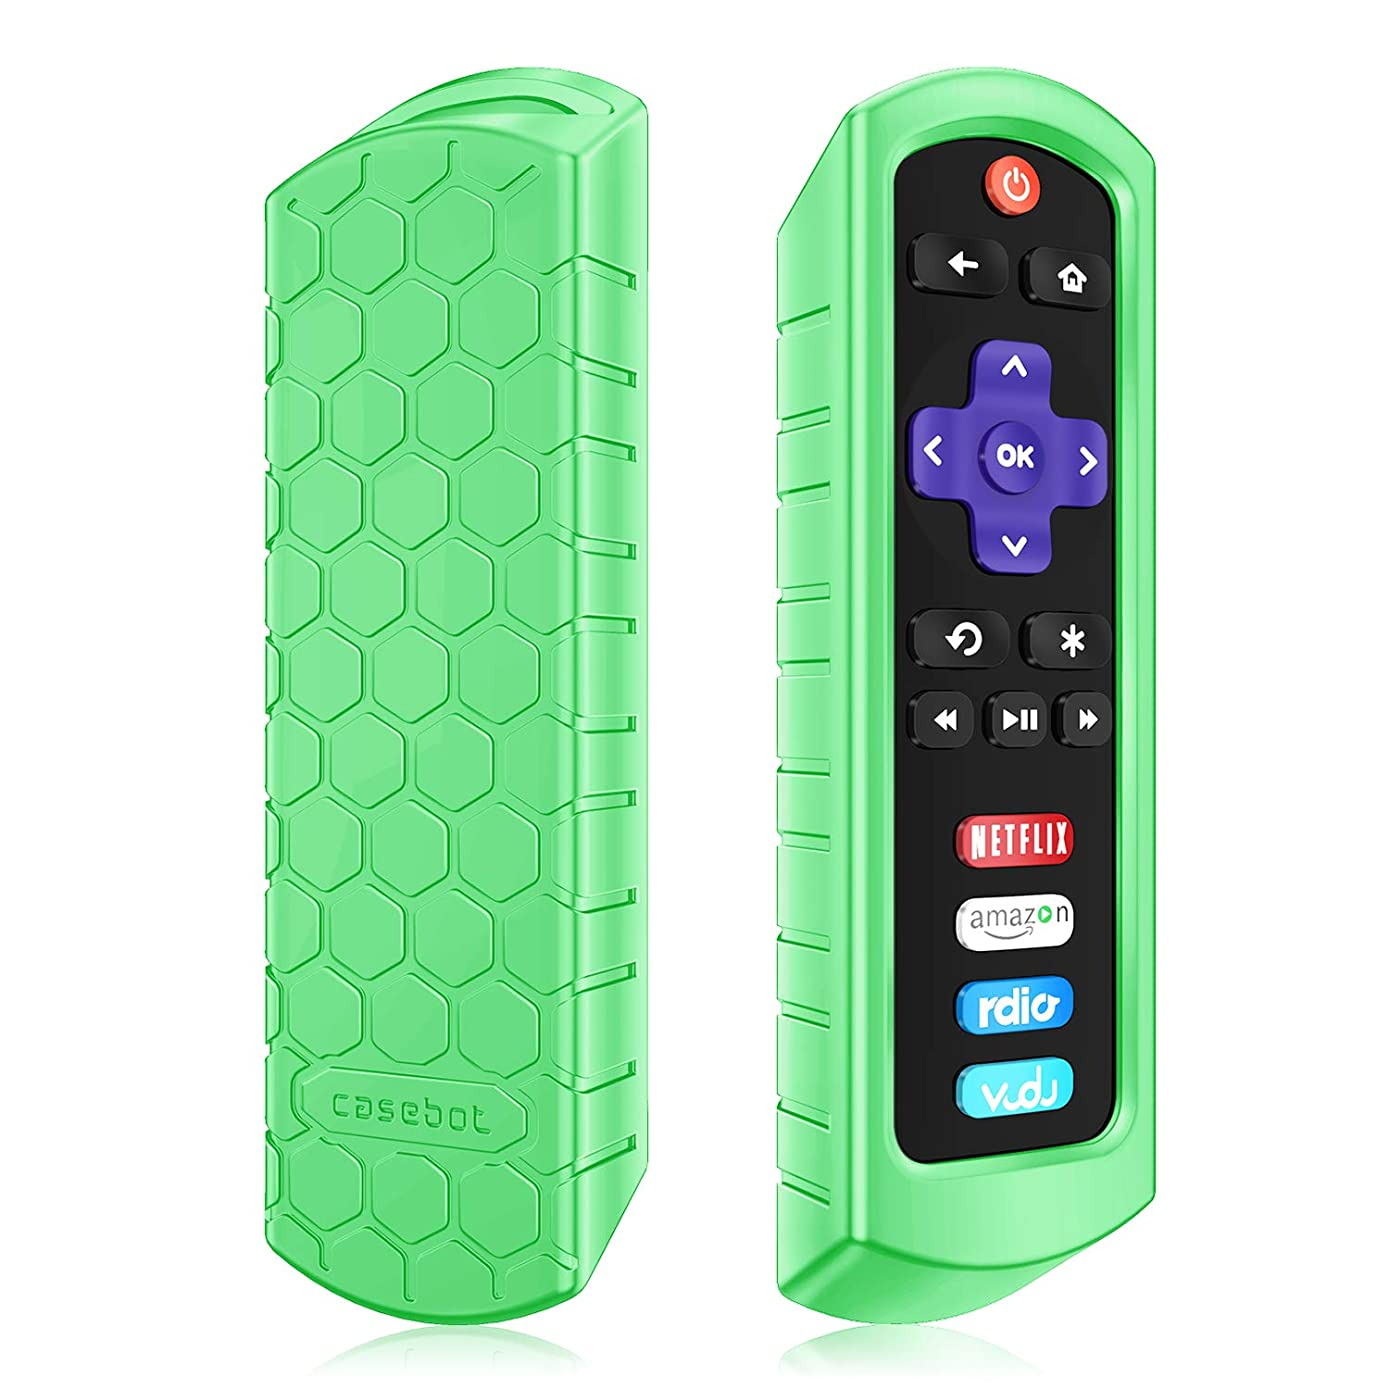 Fintie Protective Case for Roku Steaming Stick (3600R) / TCL Roku TV RC280 Remote - Casebot [Honey Comb Series] Light Weight [Anti Slip] Shock Proof Silicone Remote Controller Cover, Green Glow